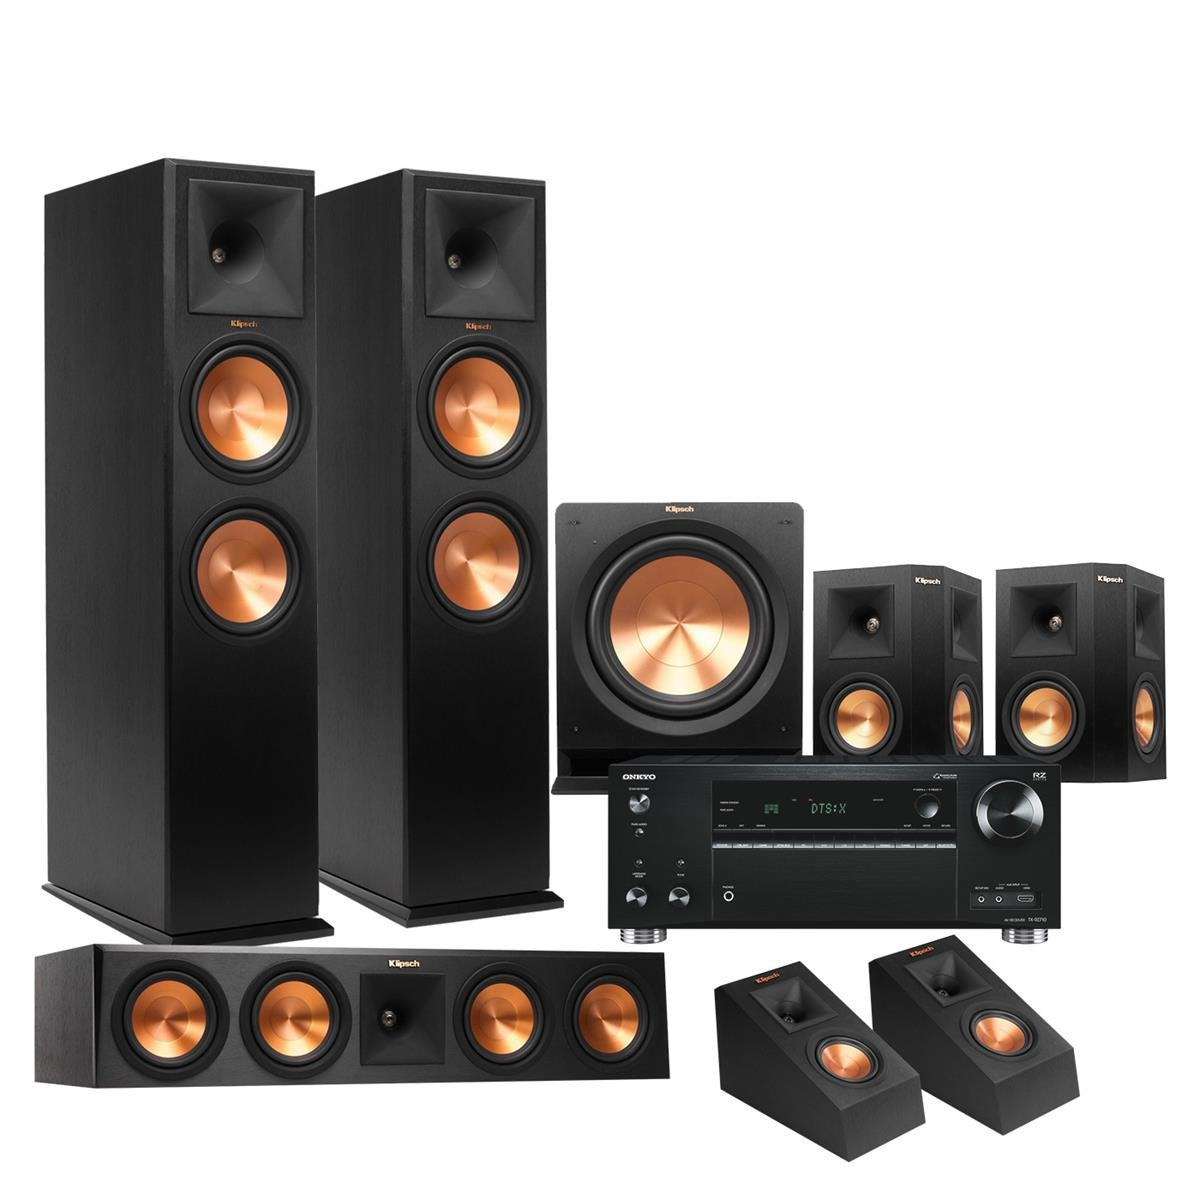 Klipsch RP-280F 5.1.2 Dolby Atmos Home Theater System with Onkyo TX-RZ710 7.2-Ch Network A/V Receiver by Klipsch